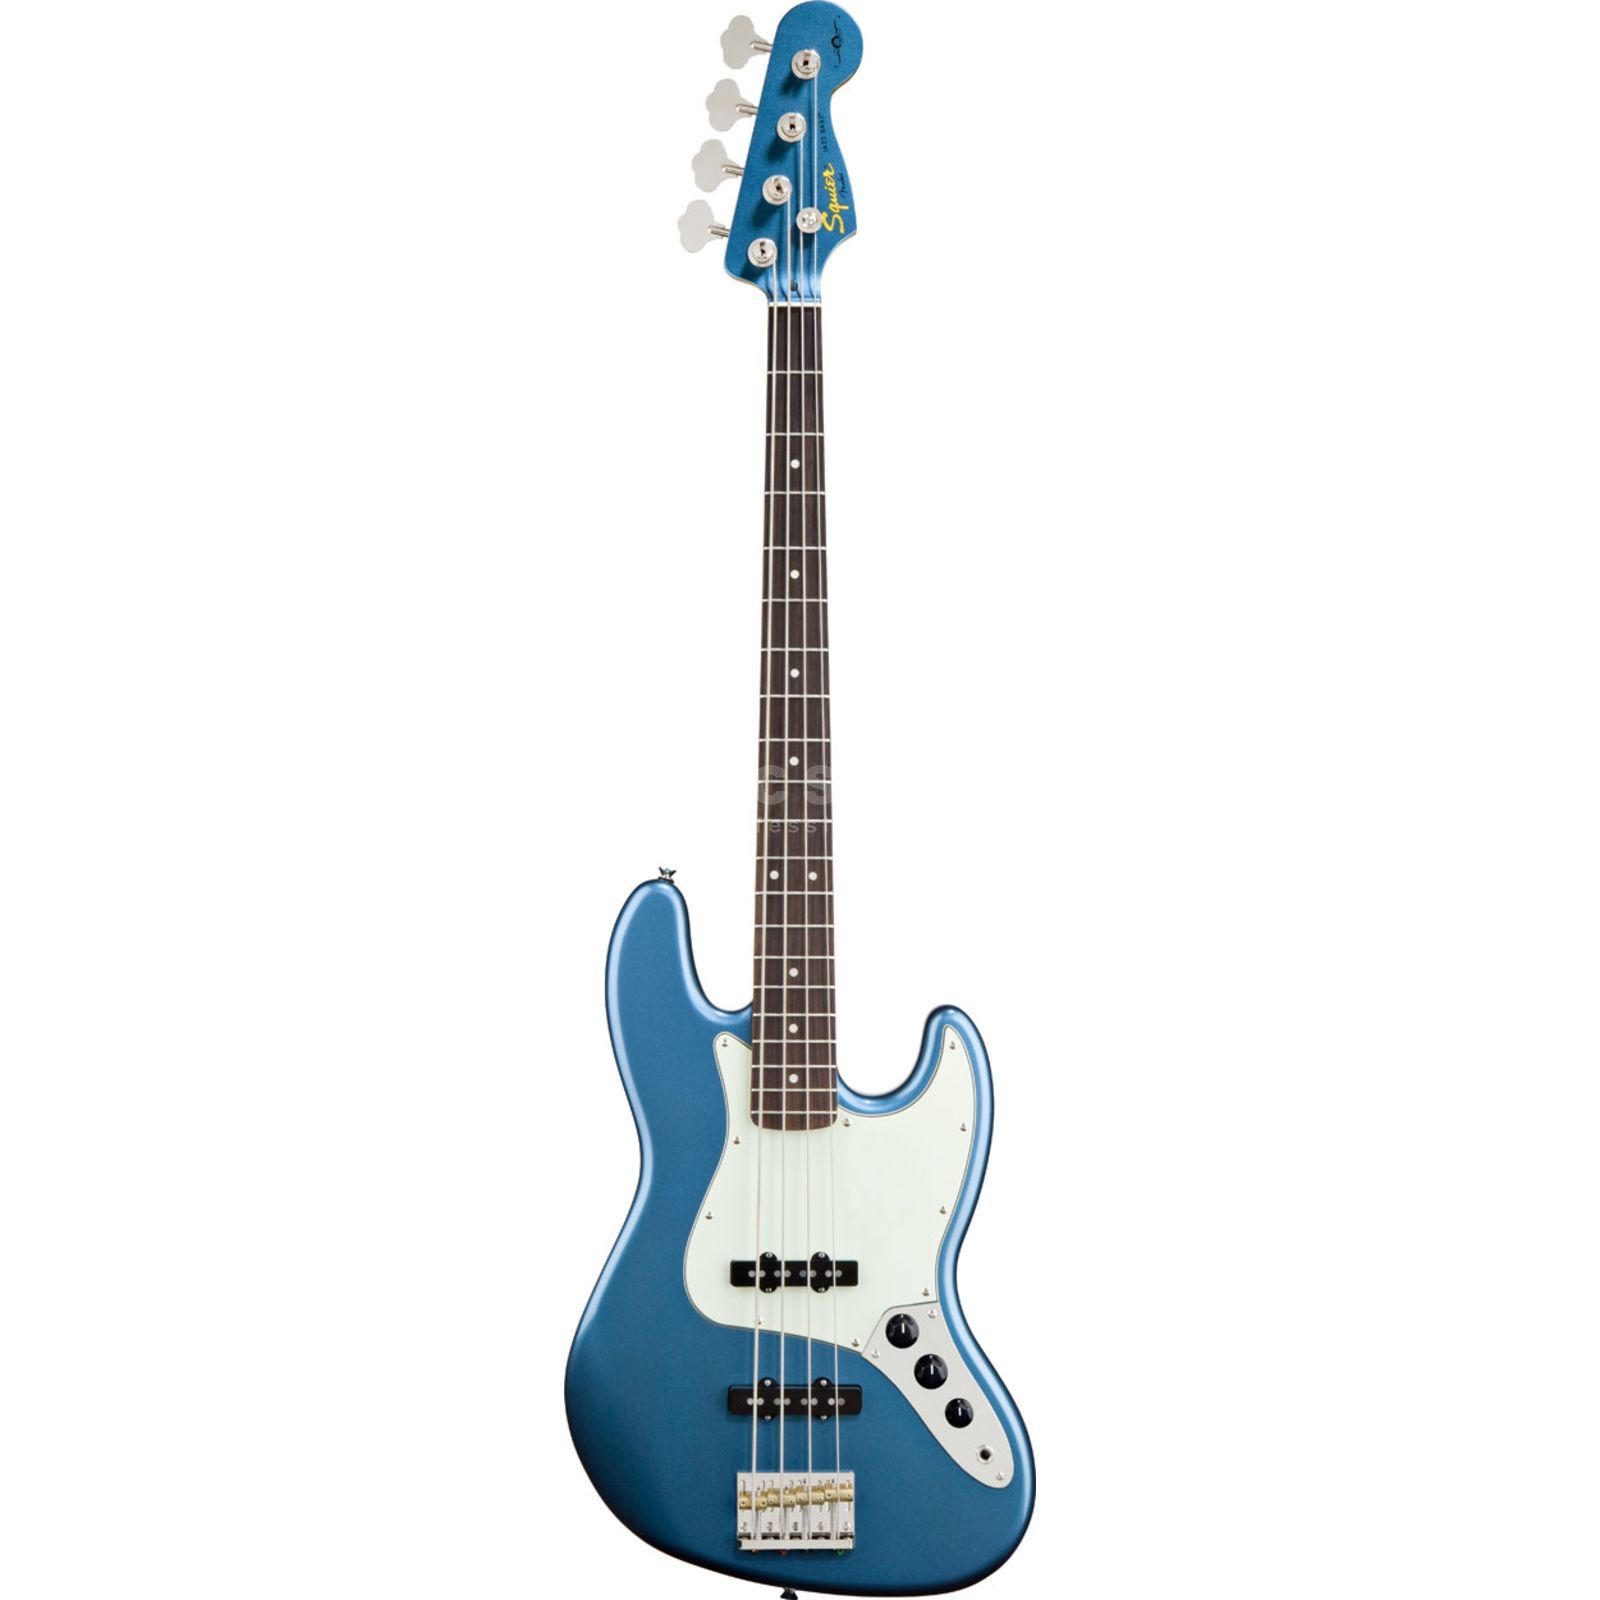 Fender Squier AS James Johnston J-Bass RW Lake Placid Blue Image du produit